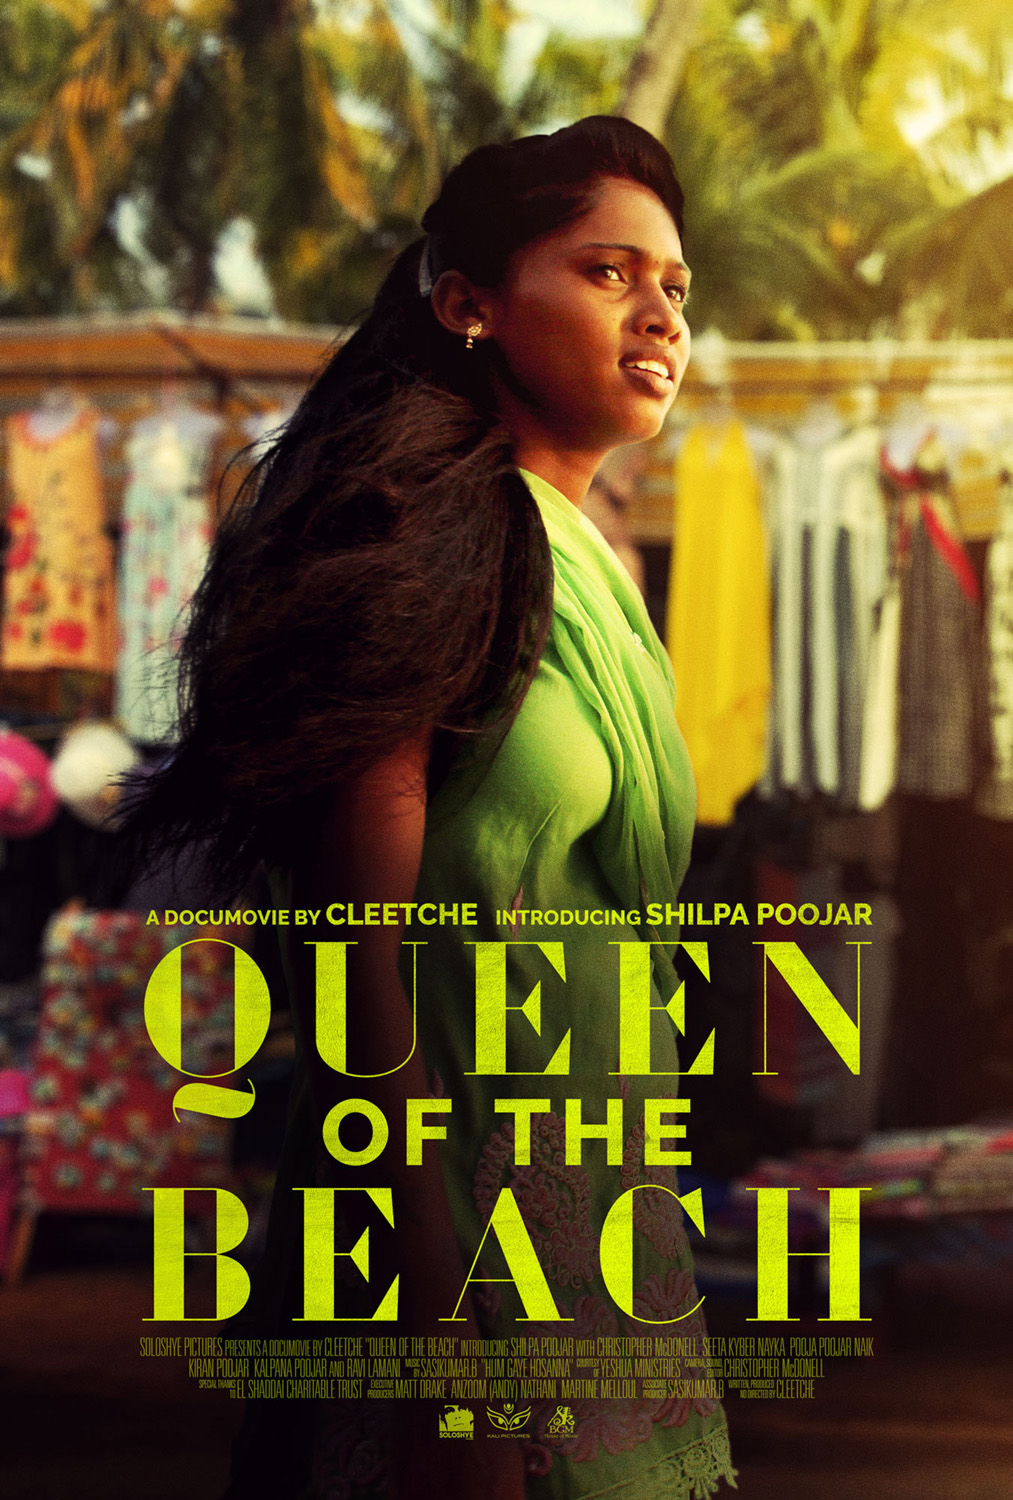 Queen of the Beach Movie Poster